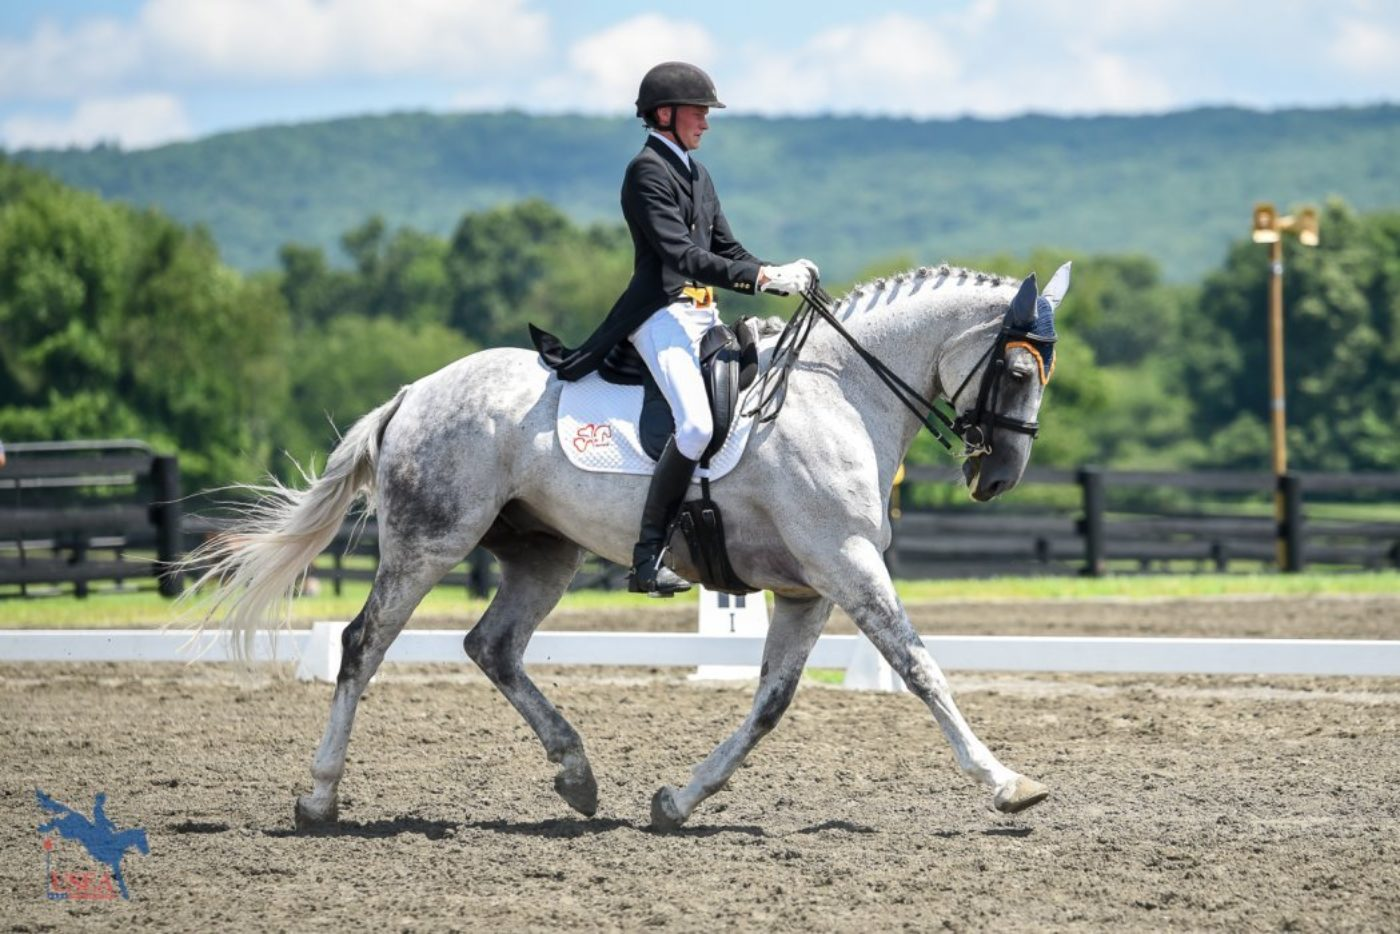 15th - Jorgen Olijslager and Northern Quest Lady's Man - 34.6